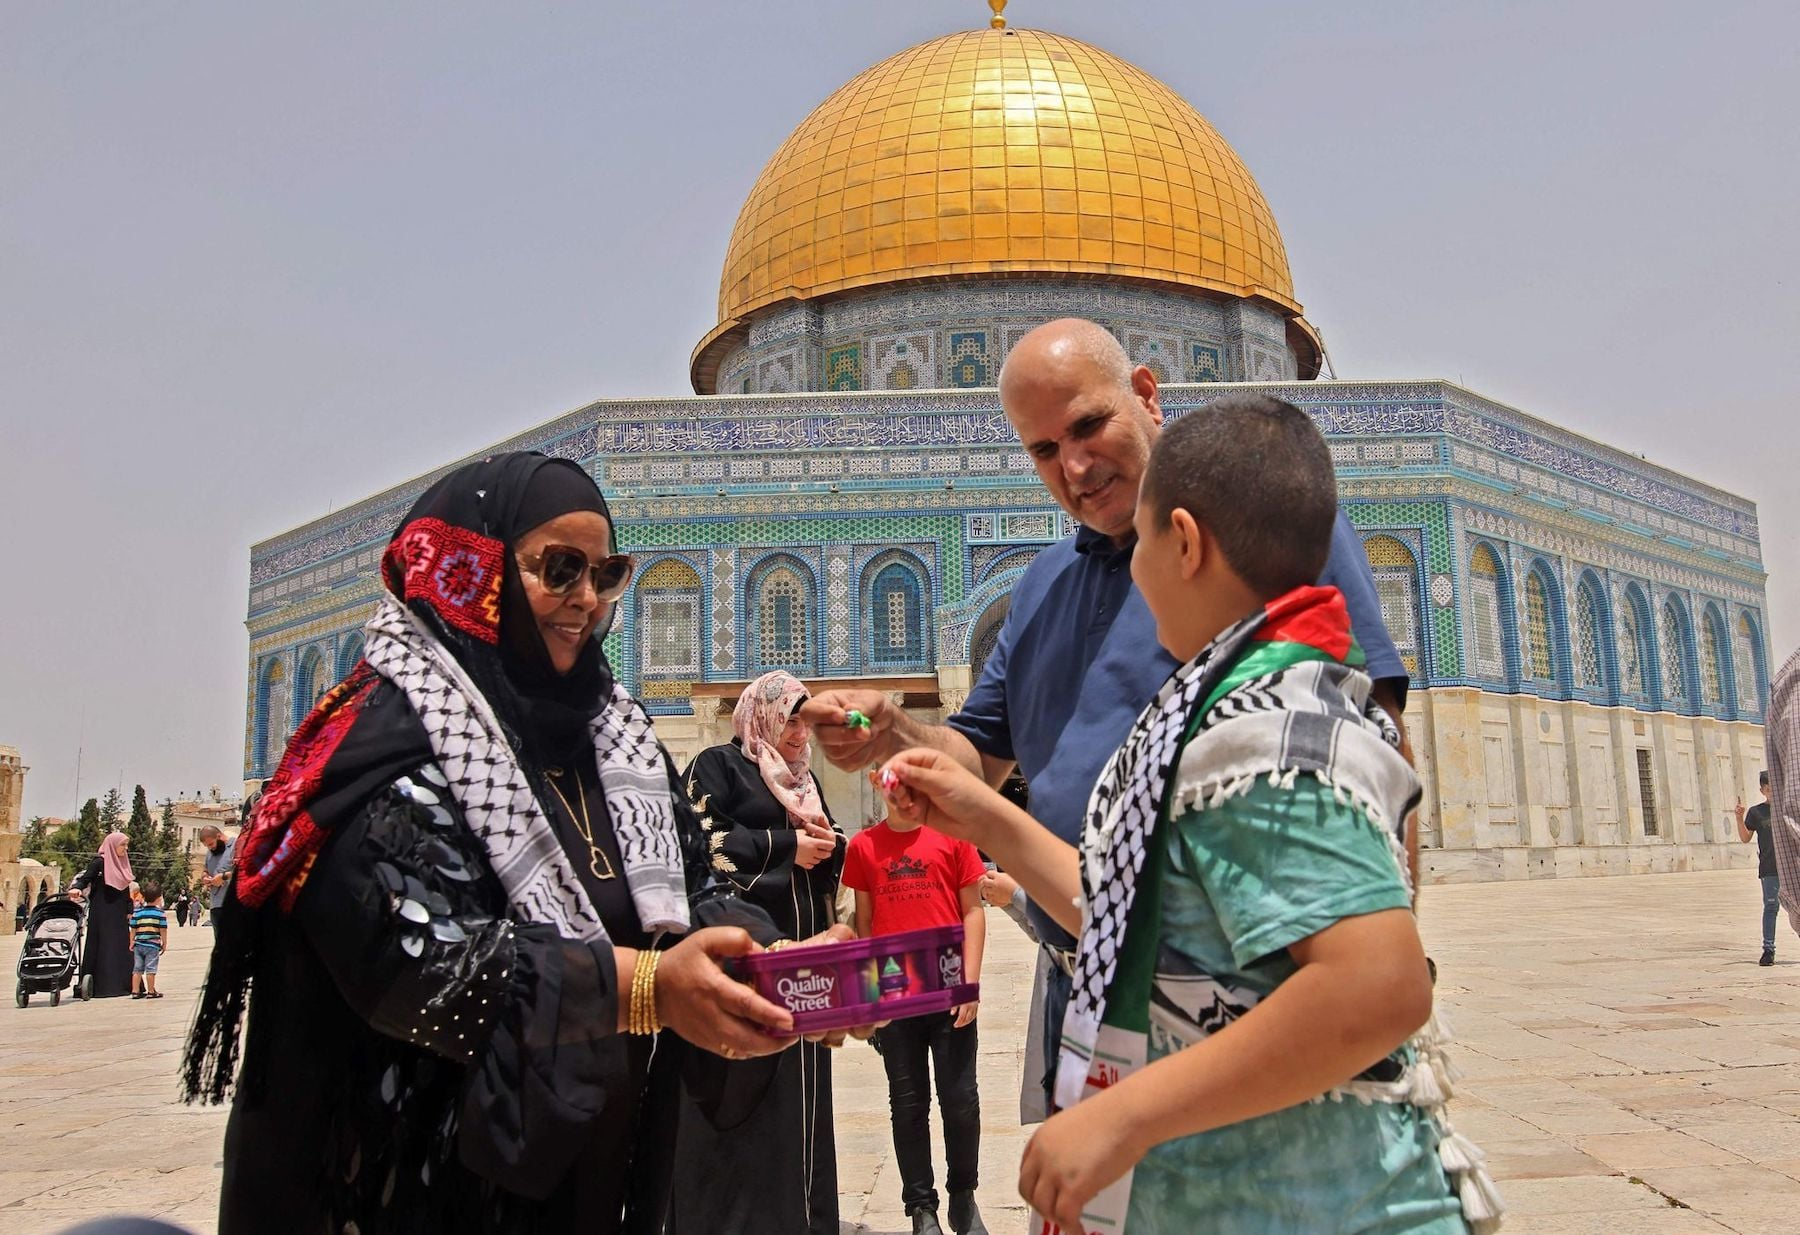 A Palestinian woman offers sweets to worshippers to celebrate the end of fighting between Israel and Hamas, during Friday prayers in Jerusalem's al-Aqsa mosque compound, the third holiest site of Islam, on May 21, 2021. — AFP